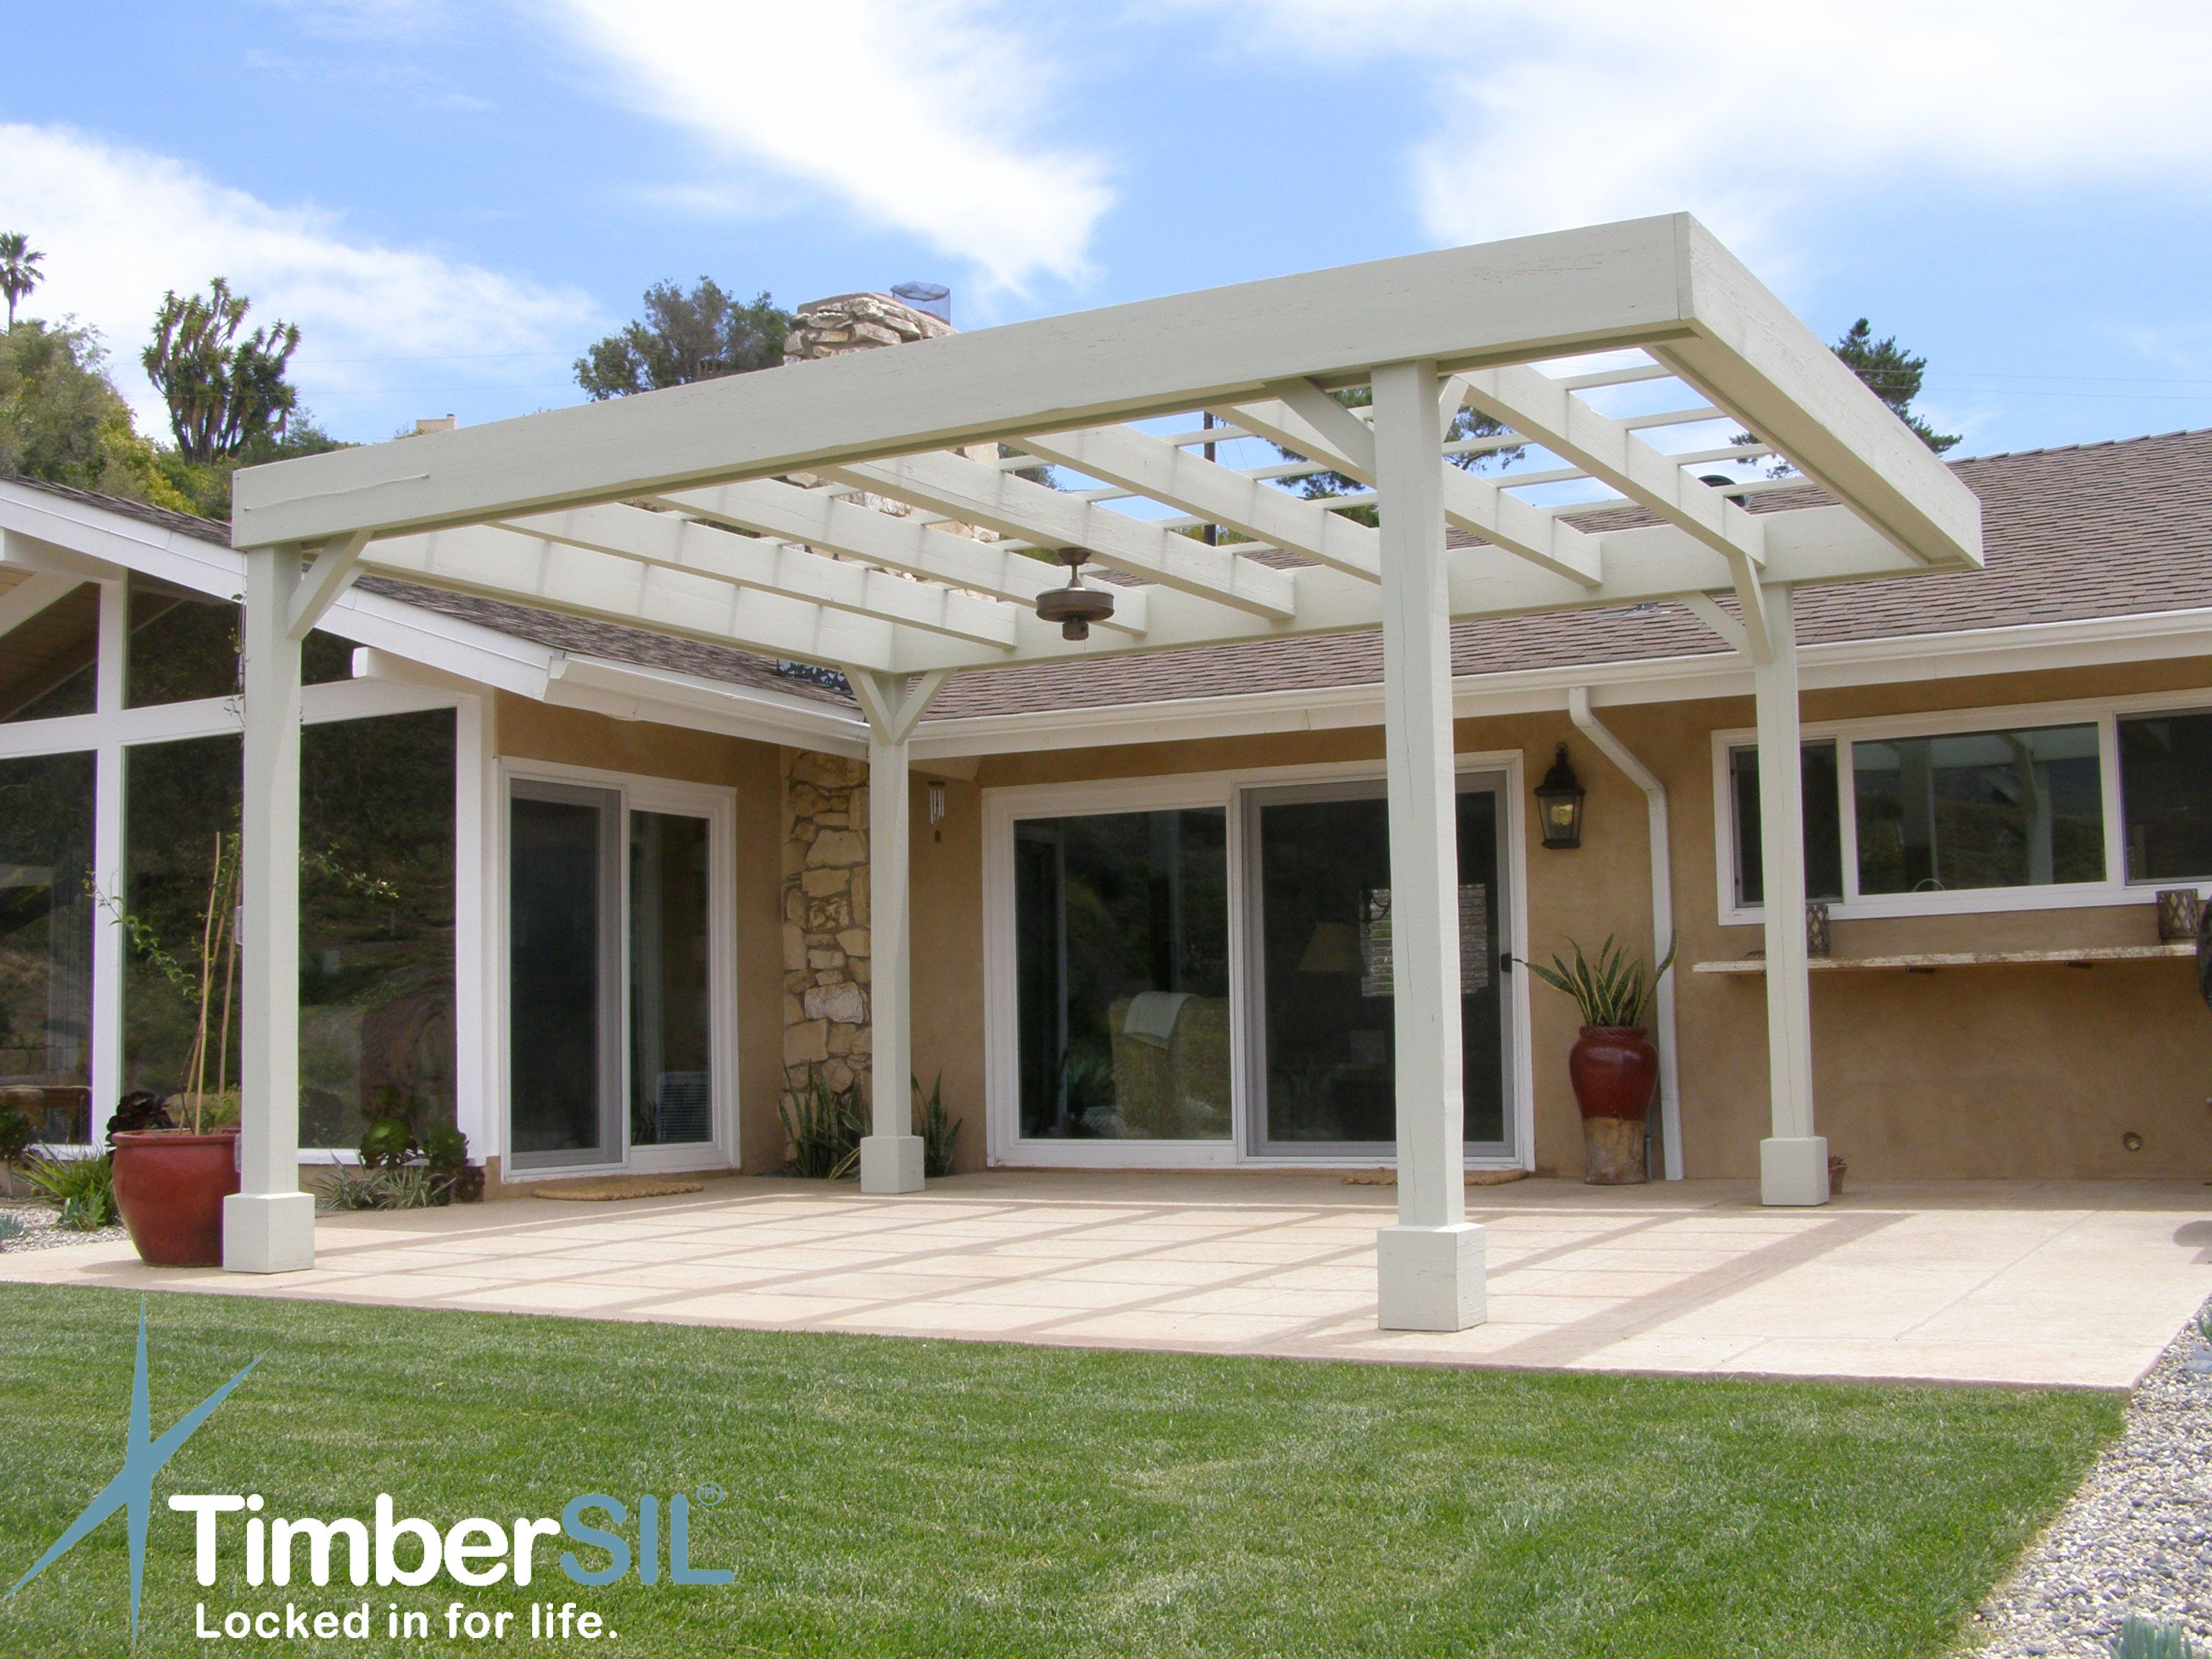 Timbersil Wood Pergola Class A Fire Rated Outside Home Free Standing Pergola Wood Pergola Pergola Pictures